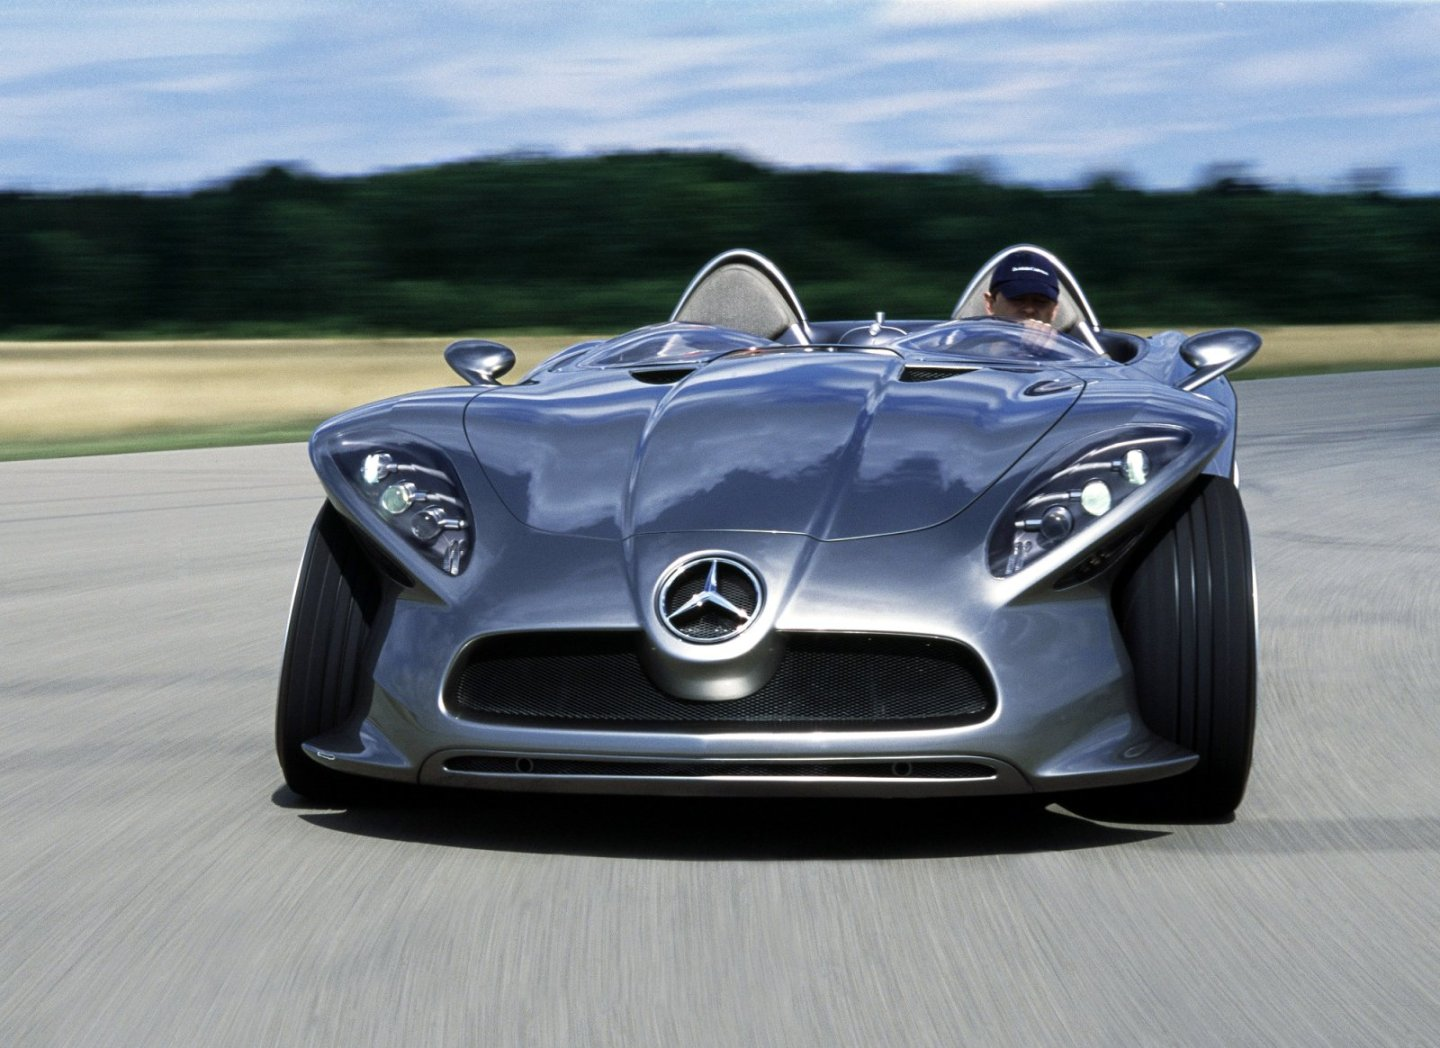 mercedes-benz stylish luxury hd wallpapers free download for